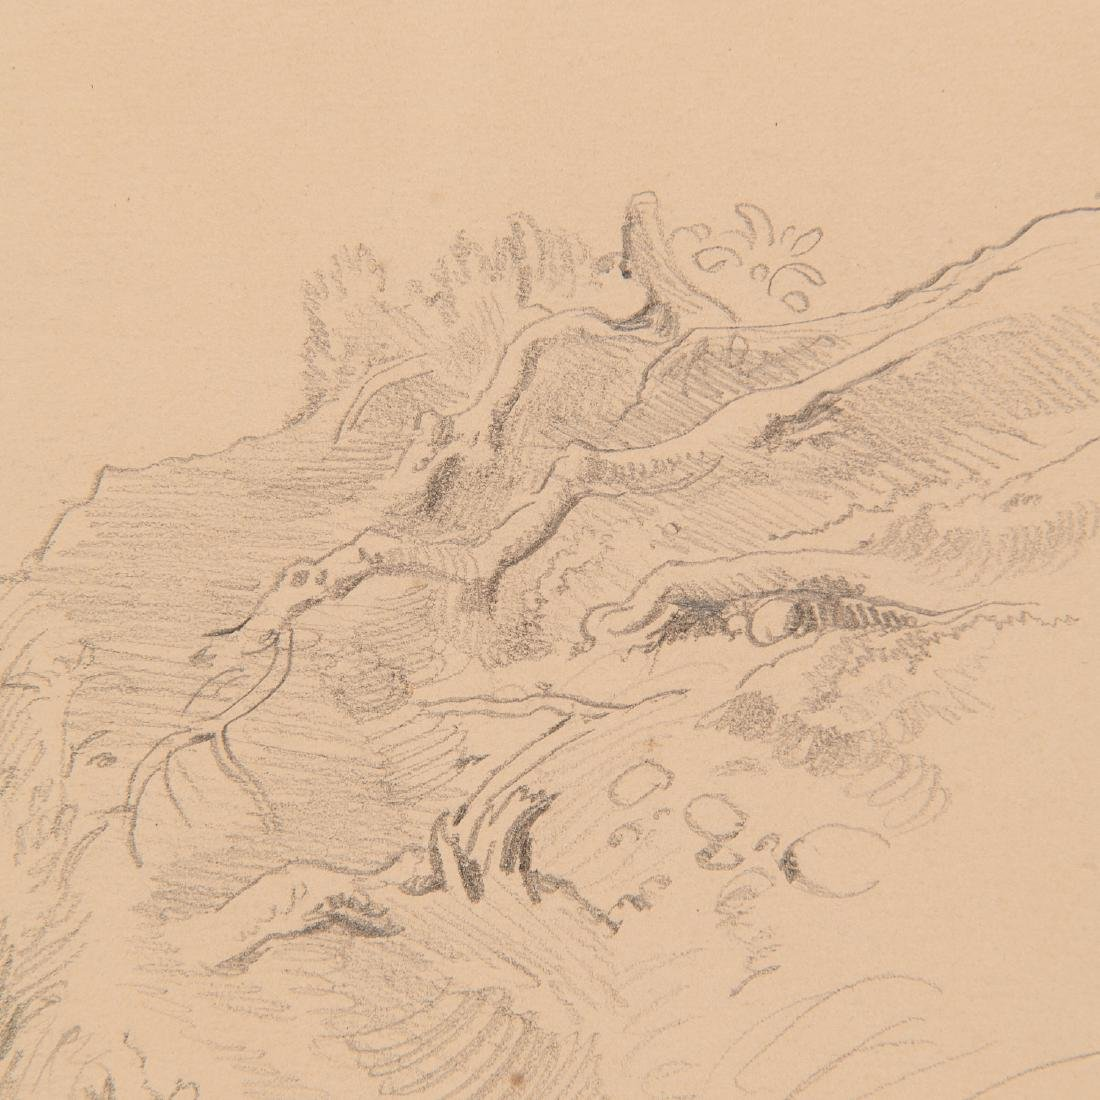 Eugen Neureuther, drawing, c. 1840 - 8